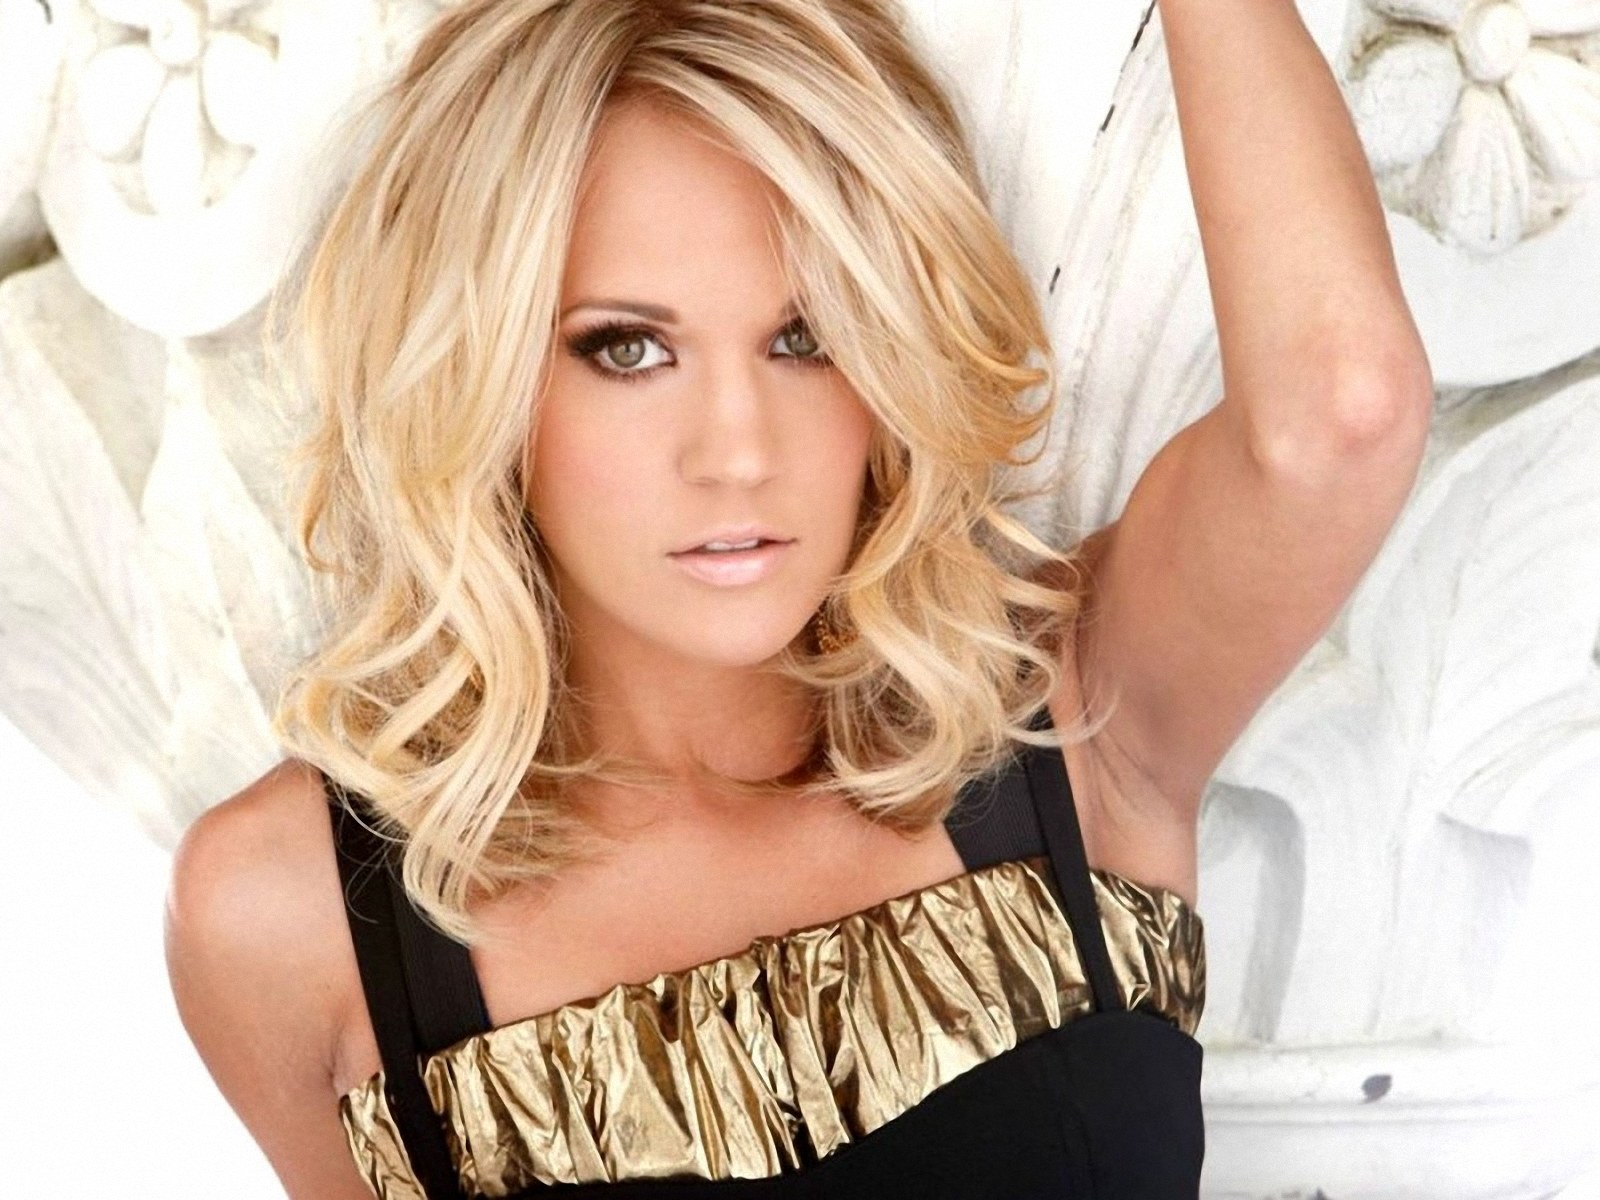 b7935d70db Carrie Underwood photoshoot. Posted by RAJA KUMAR at 02 58